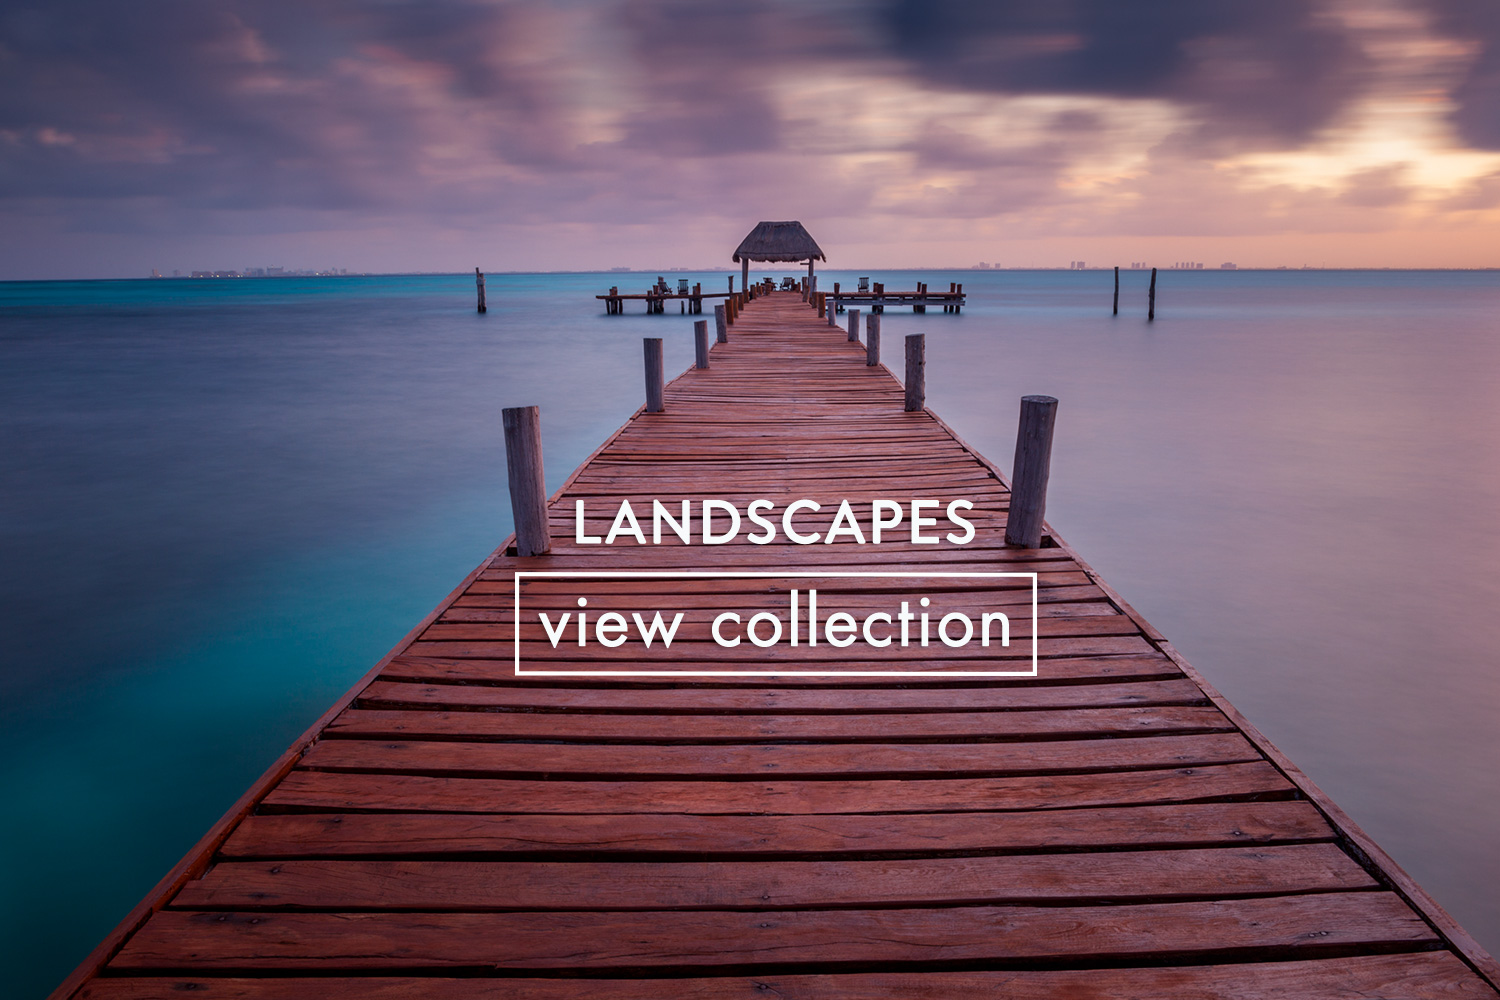 landscapes-button.jpg